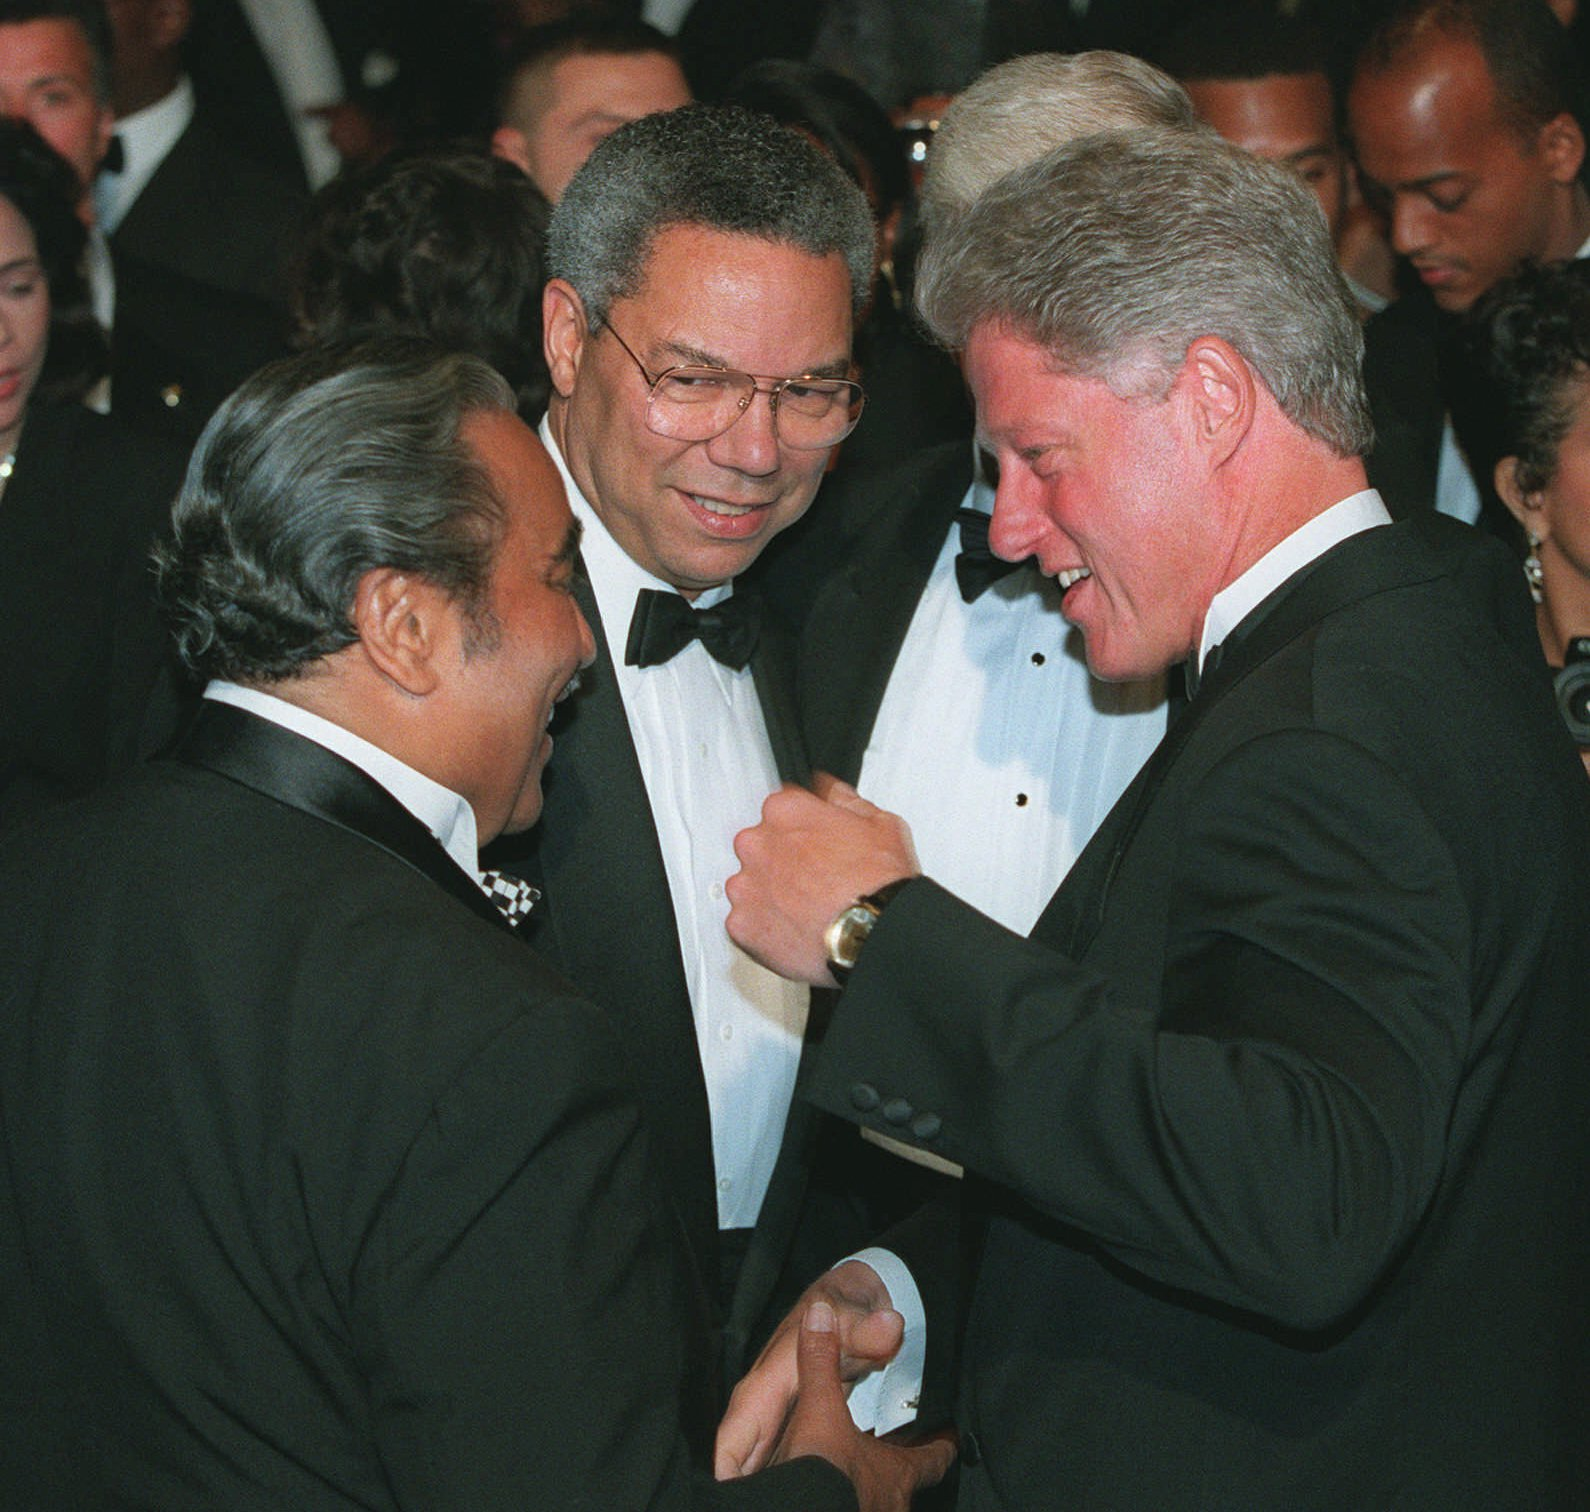 President Clinton talks with Colin Powell, center and Rep. Charles Rangel, D-N.Y., prior to a Congressional Black Caucus dinner in Washington, Sept. 23, 1995.